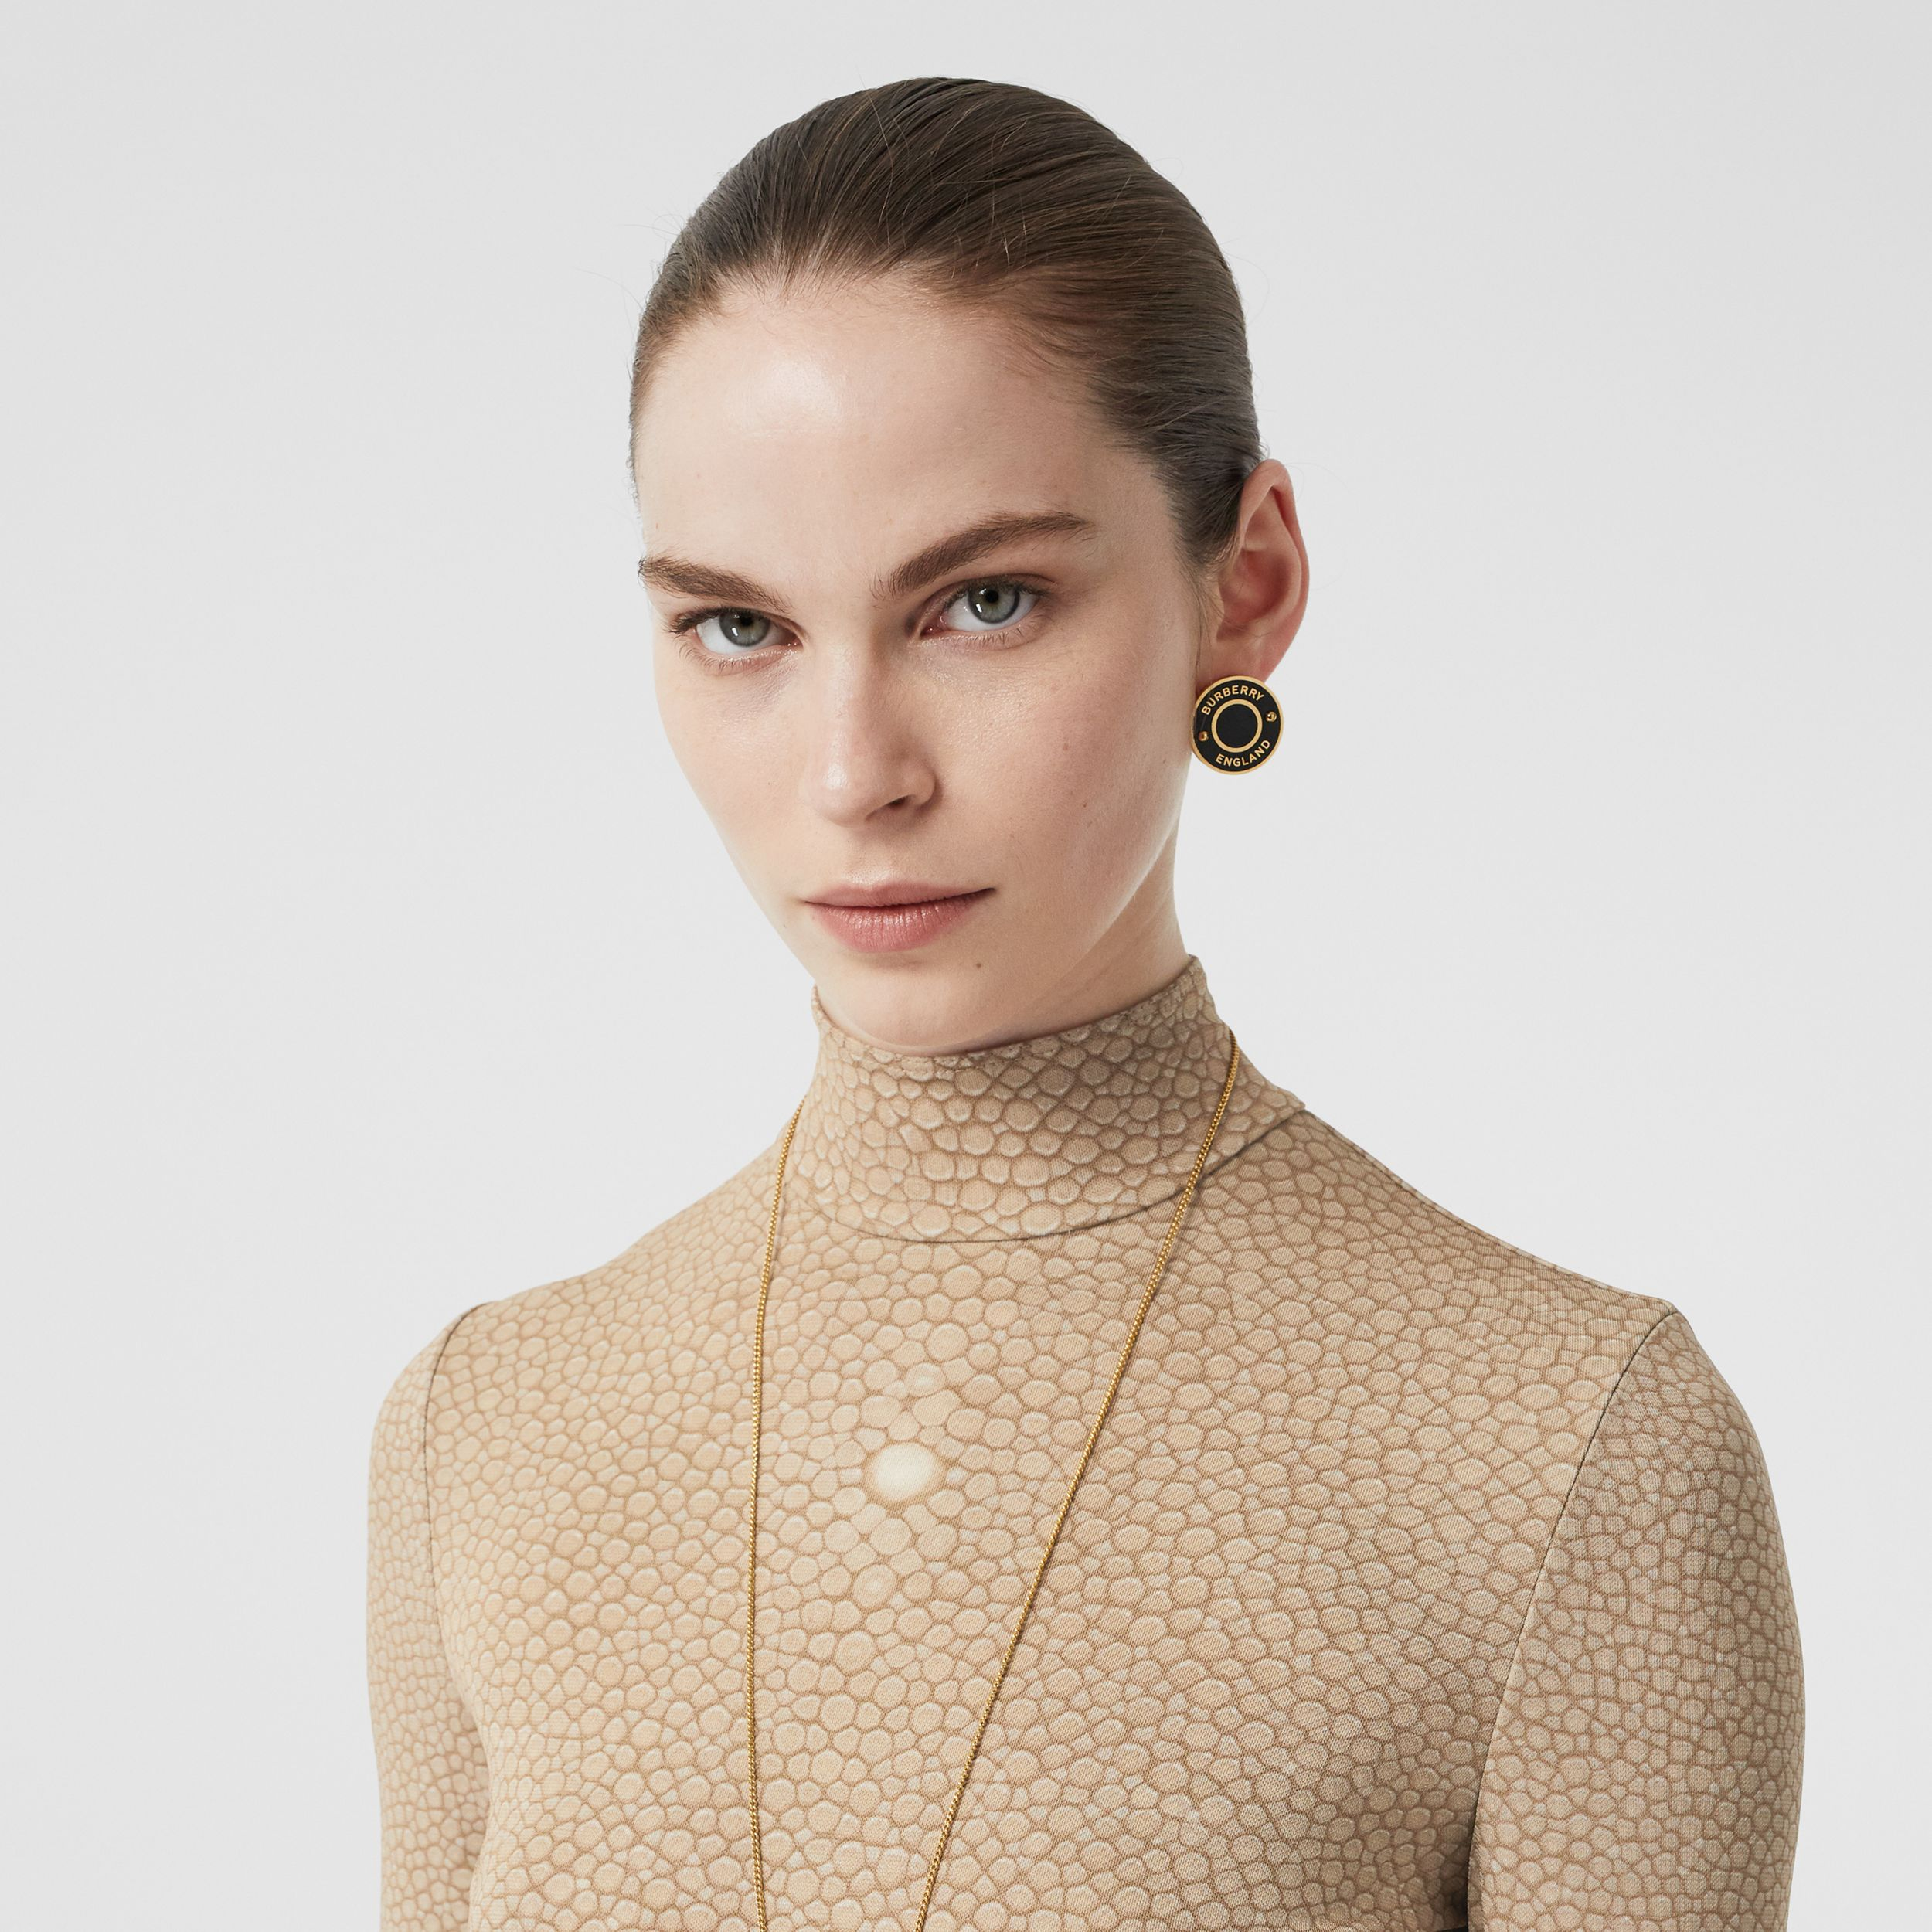 Fish-scale Print Stretch Jersey Turtleneck Top in Light Sand - Women | Burberry - 2